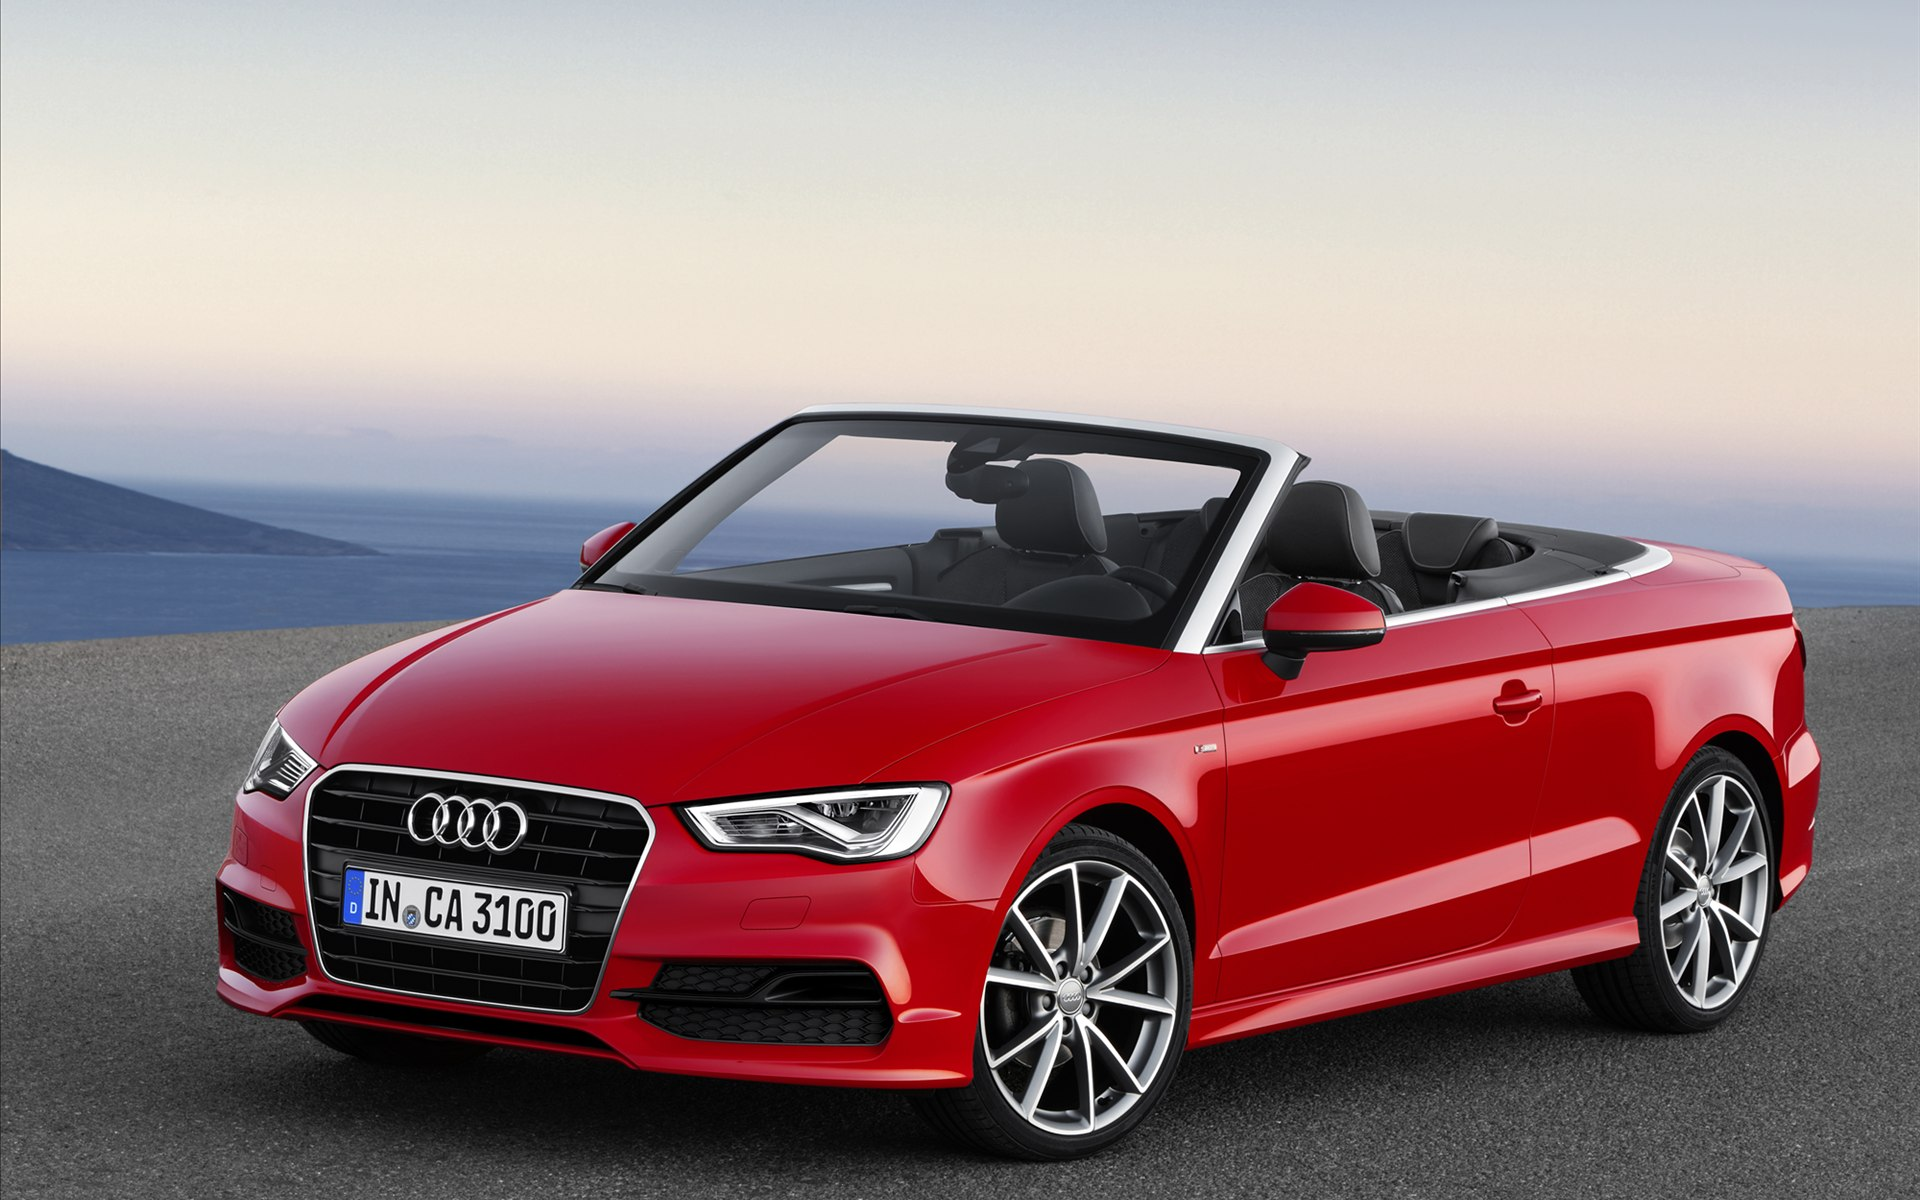 Audi A3 cabriolet Specifications, Price, Mileage, Pics, Review